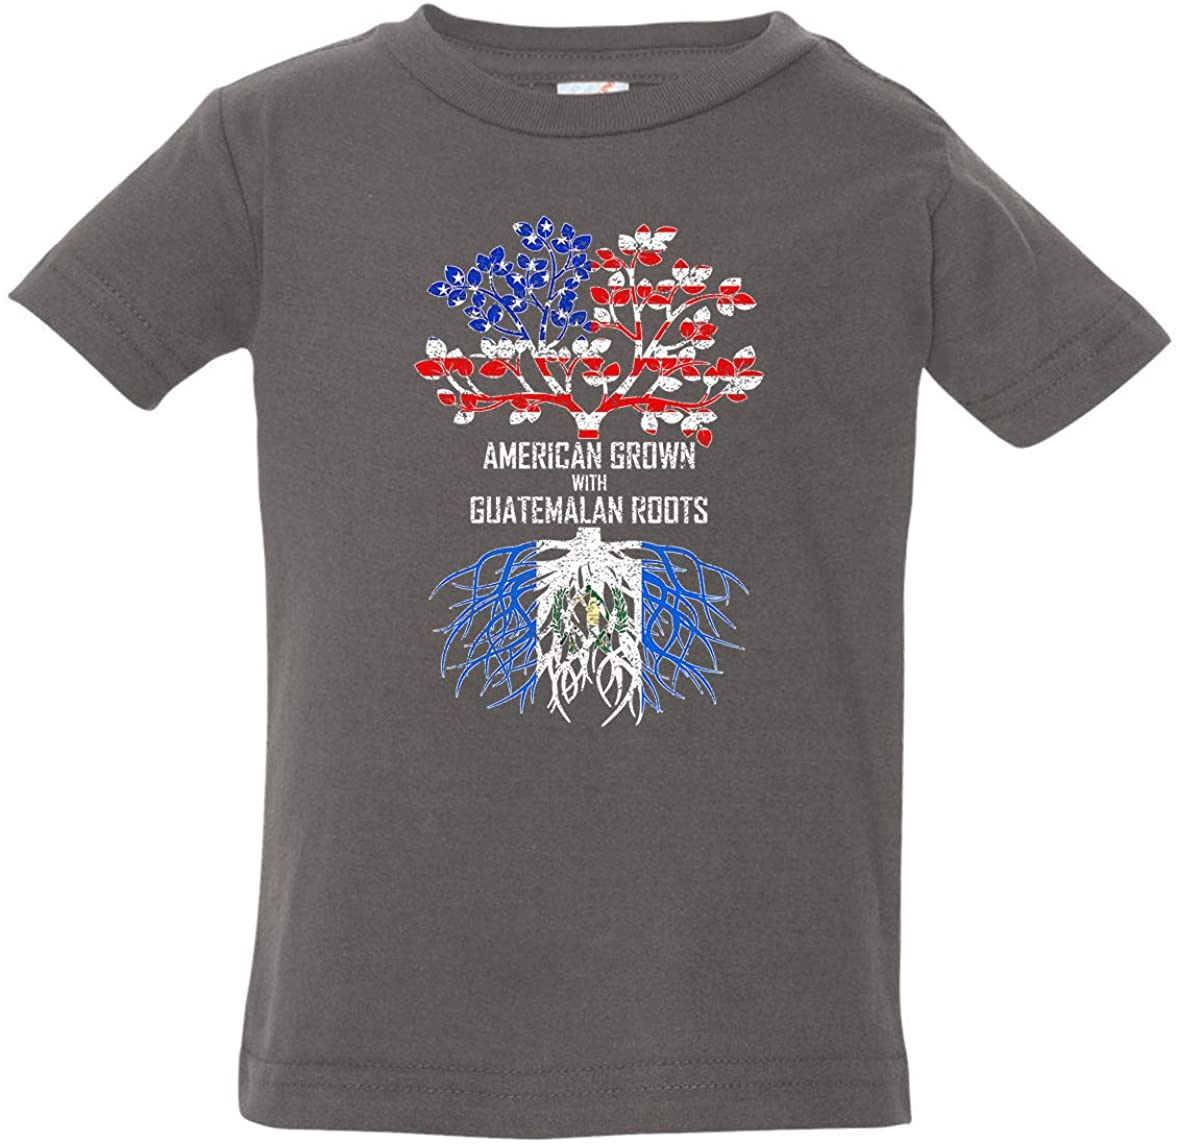 Tenacitee Baby's American Grown with Guatemalan Roots Shirt